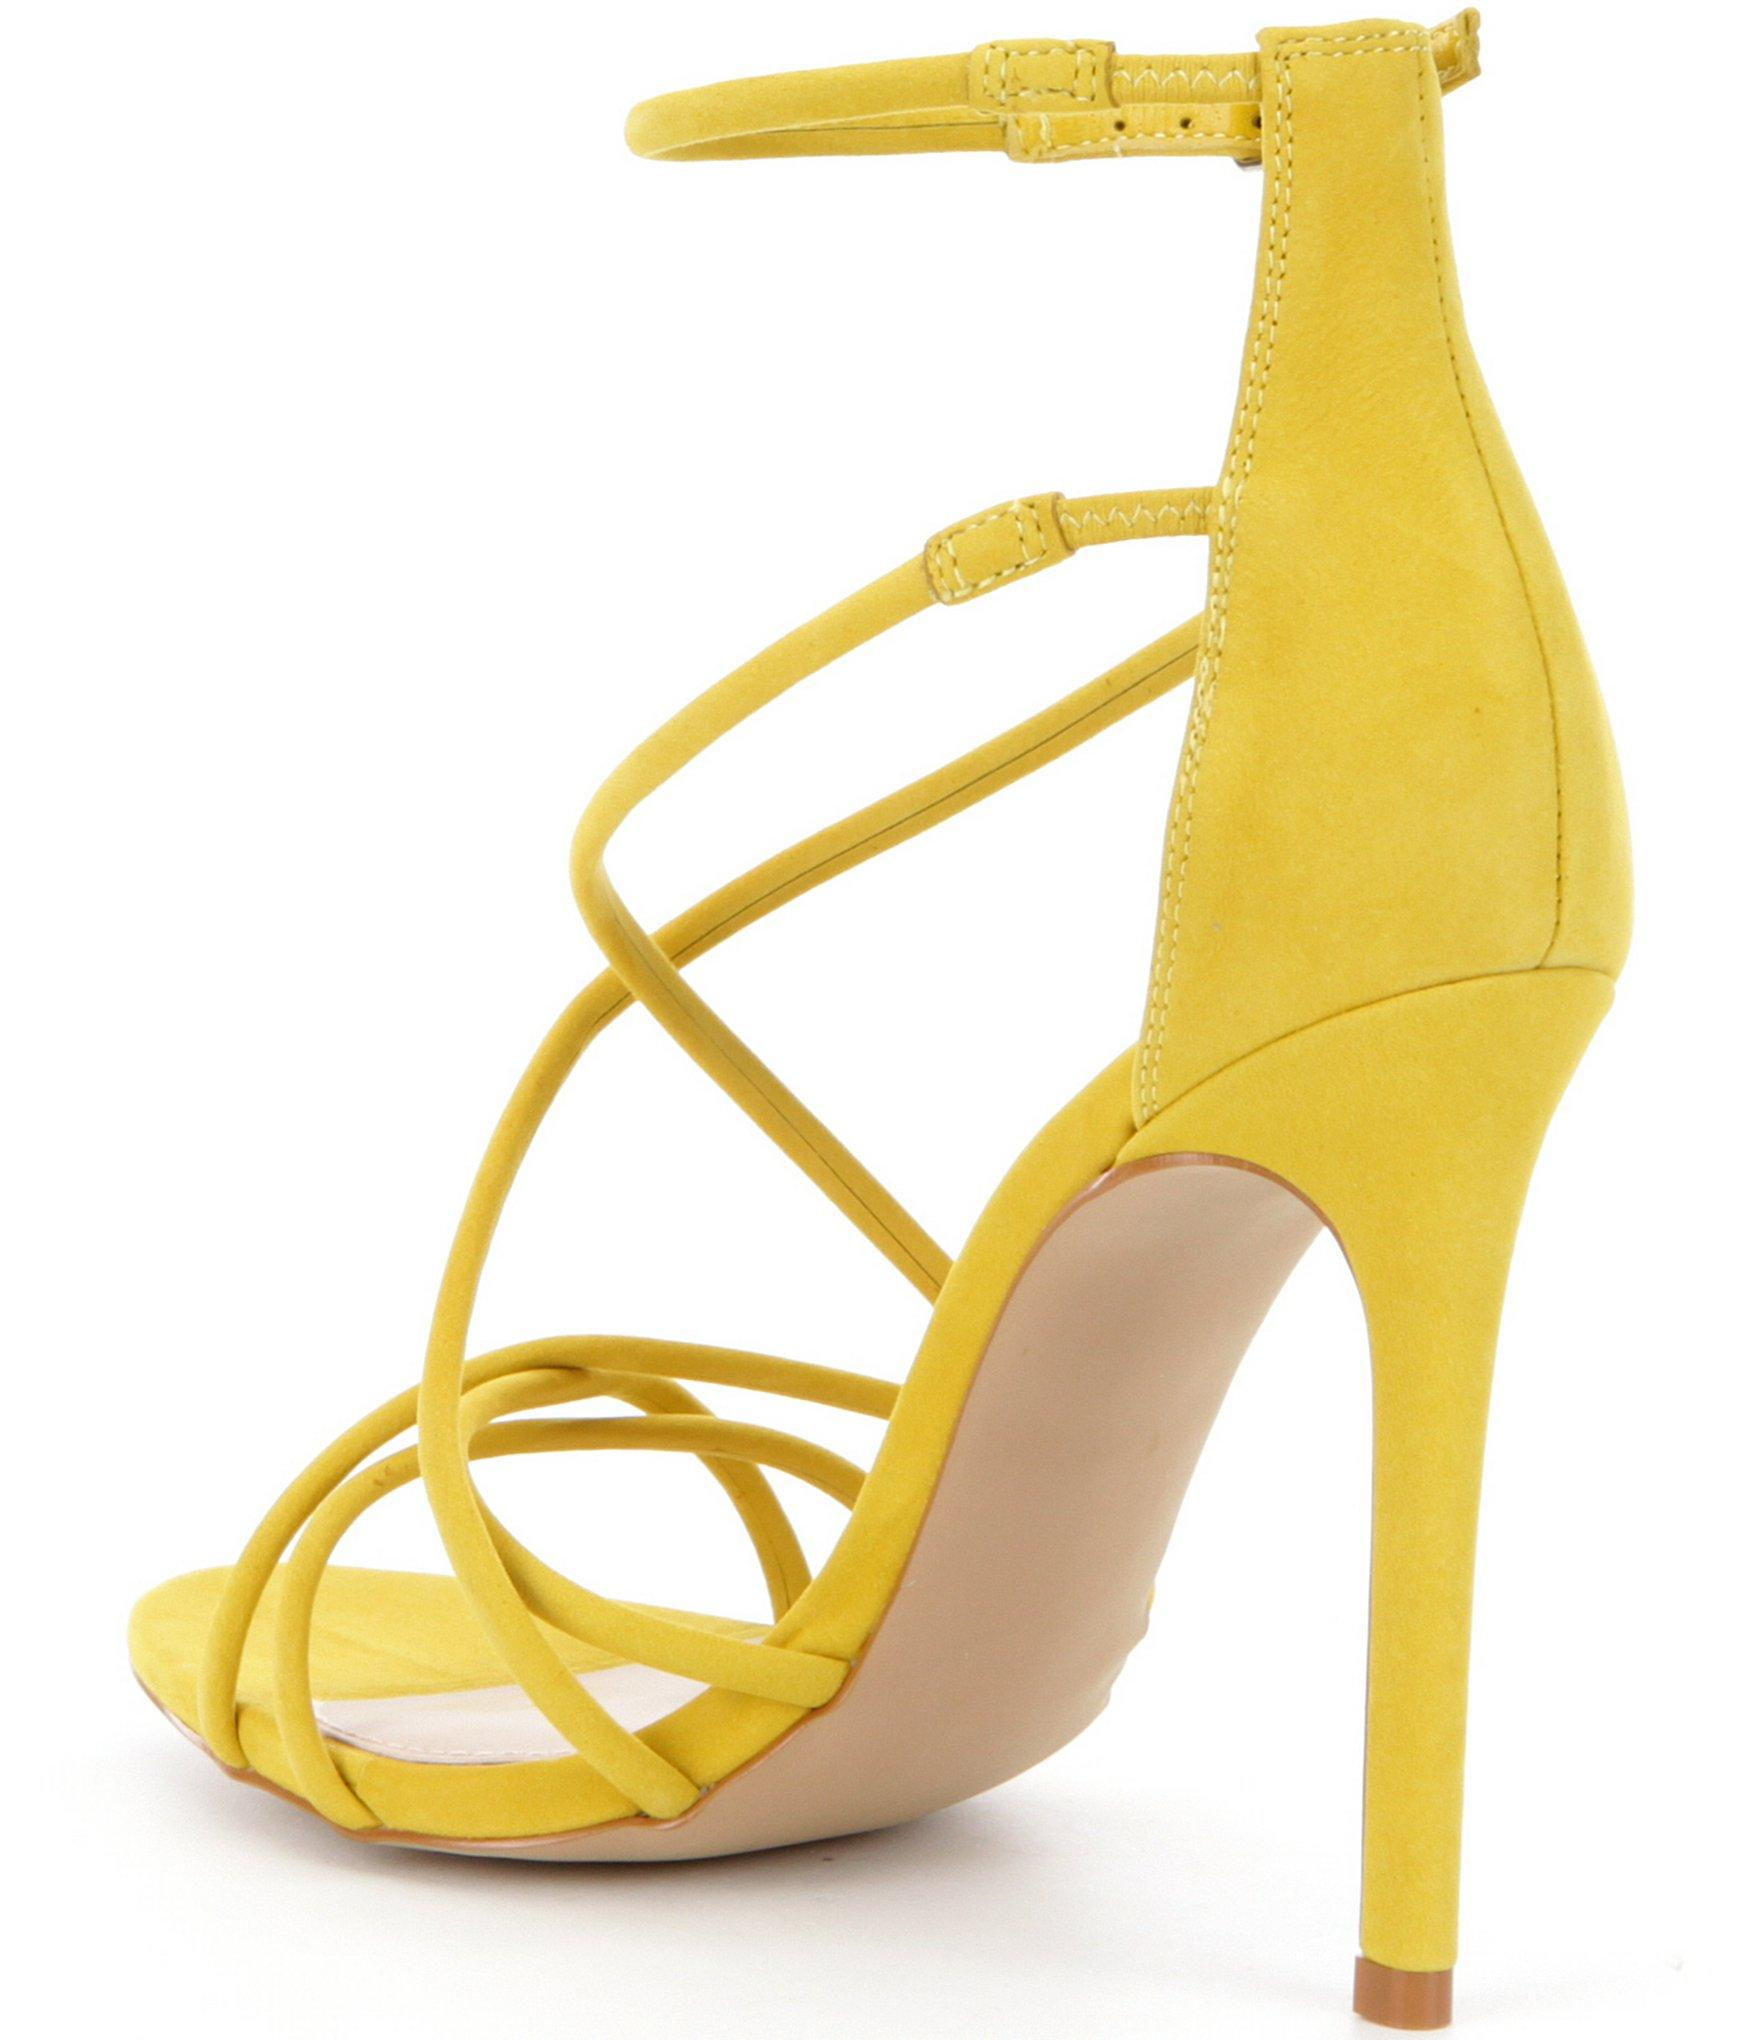 Steve Madden Strappy Sandal In Yellow Lyst